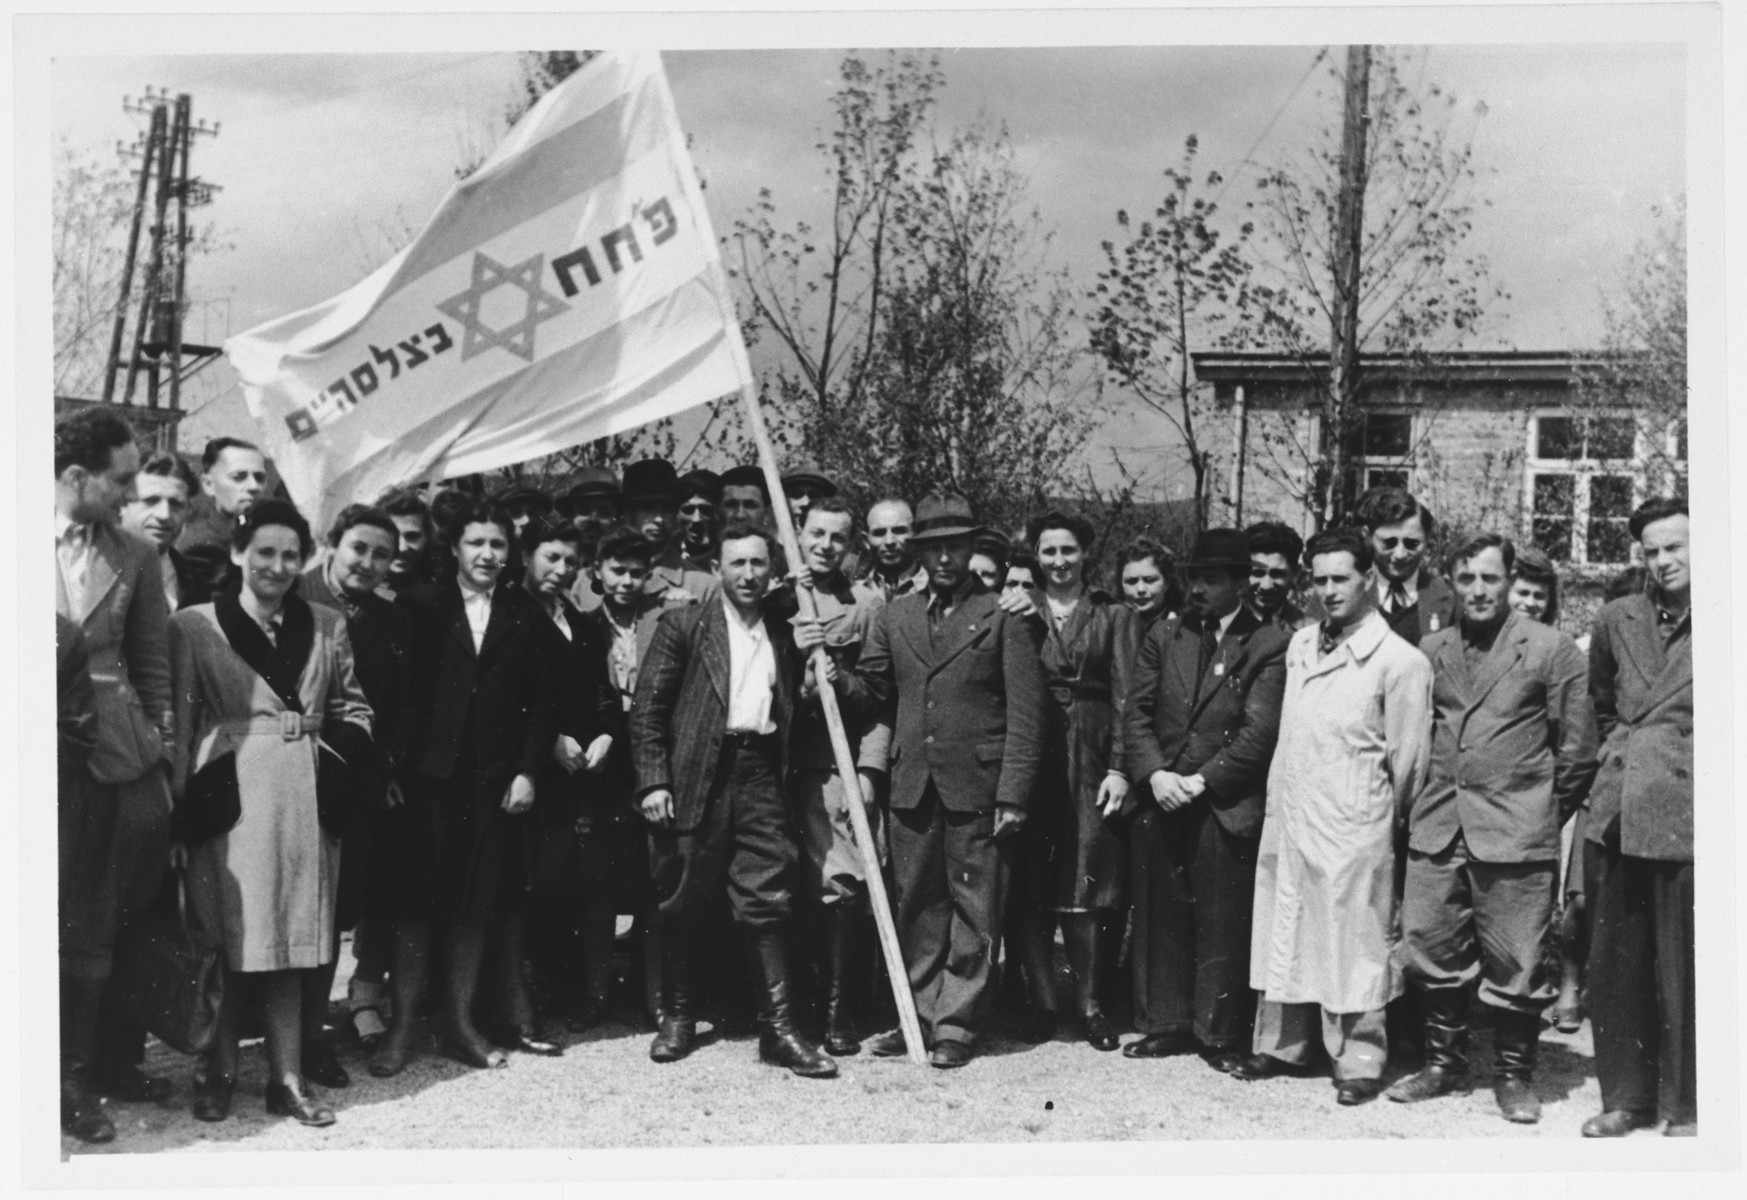 Members of the PHH (Partizanim-Hayyalim-Halutzim) gather alongside their banner in the Zeilsheim displaced persons' camp.